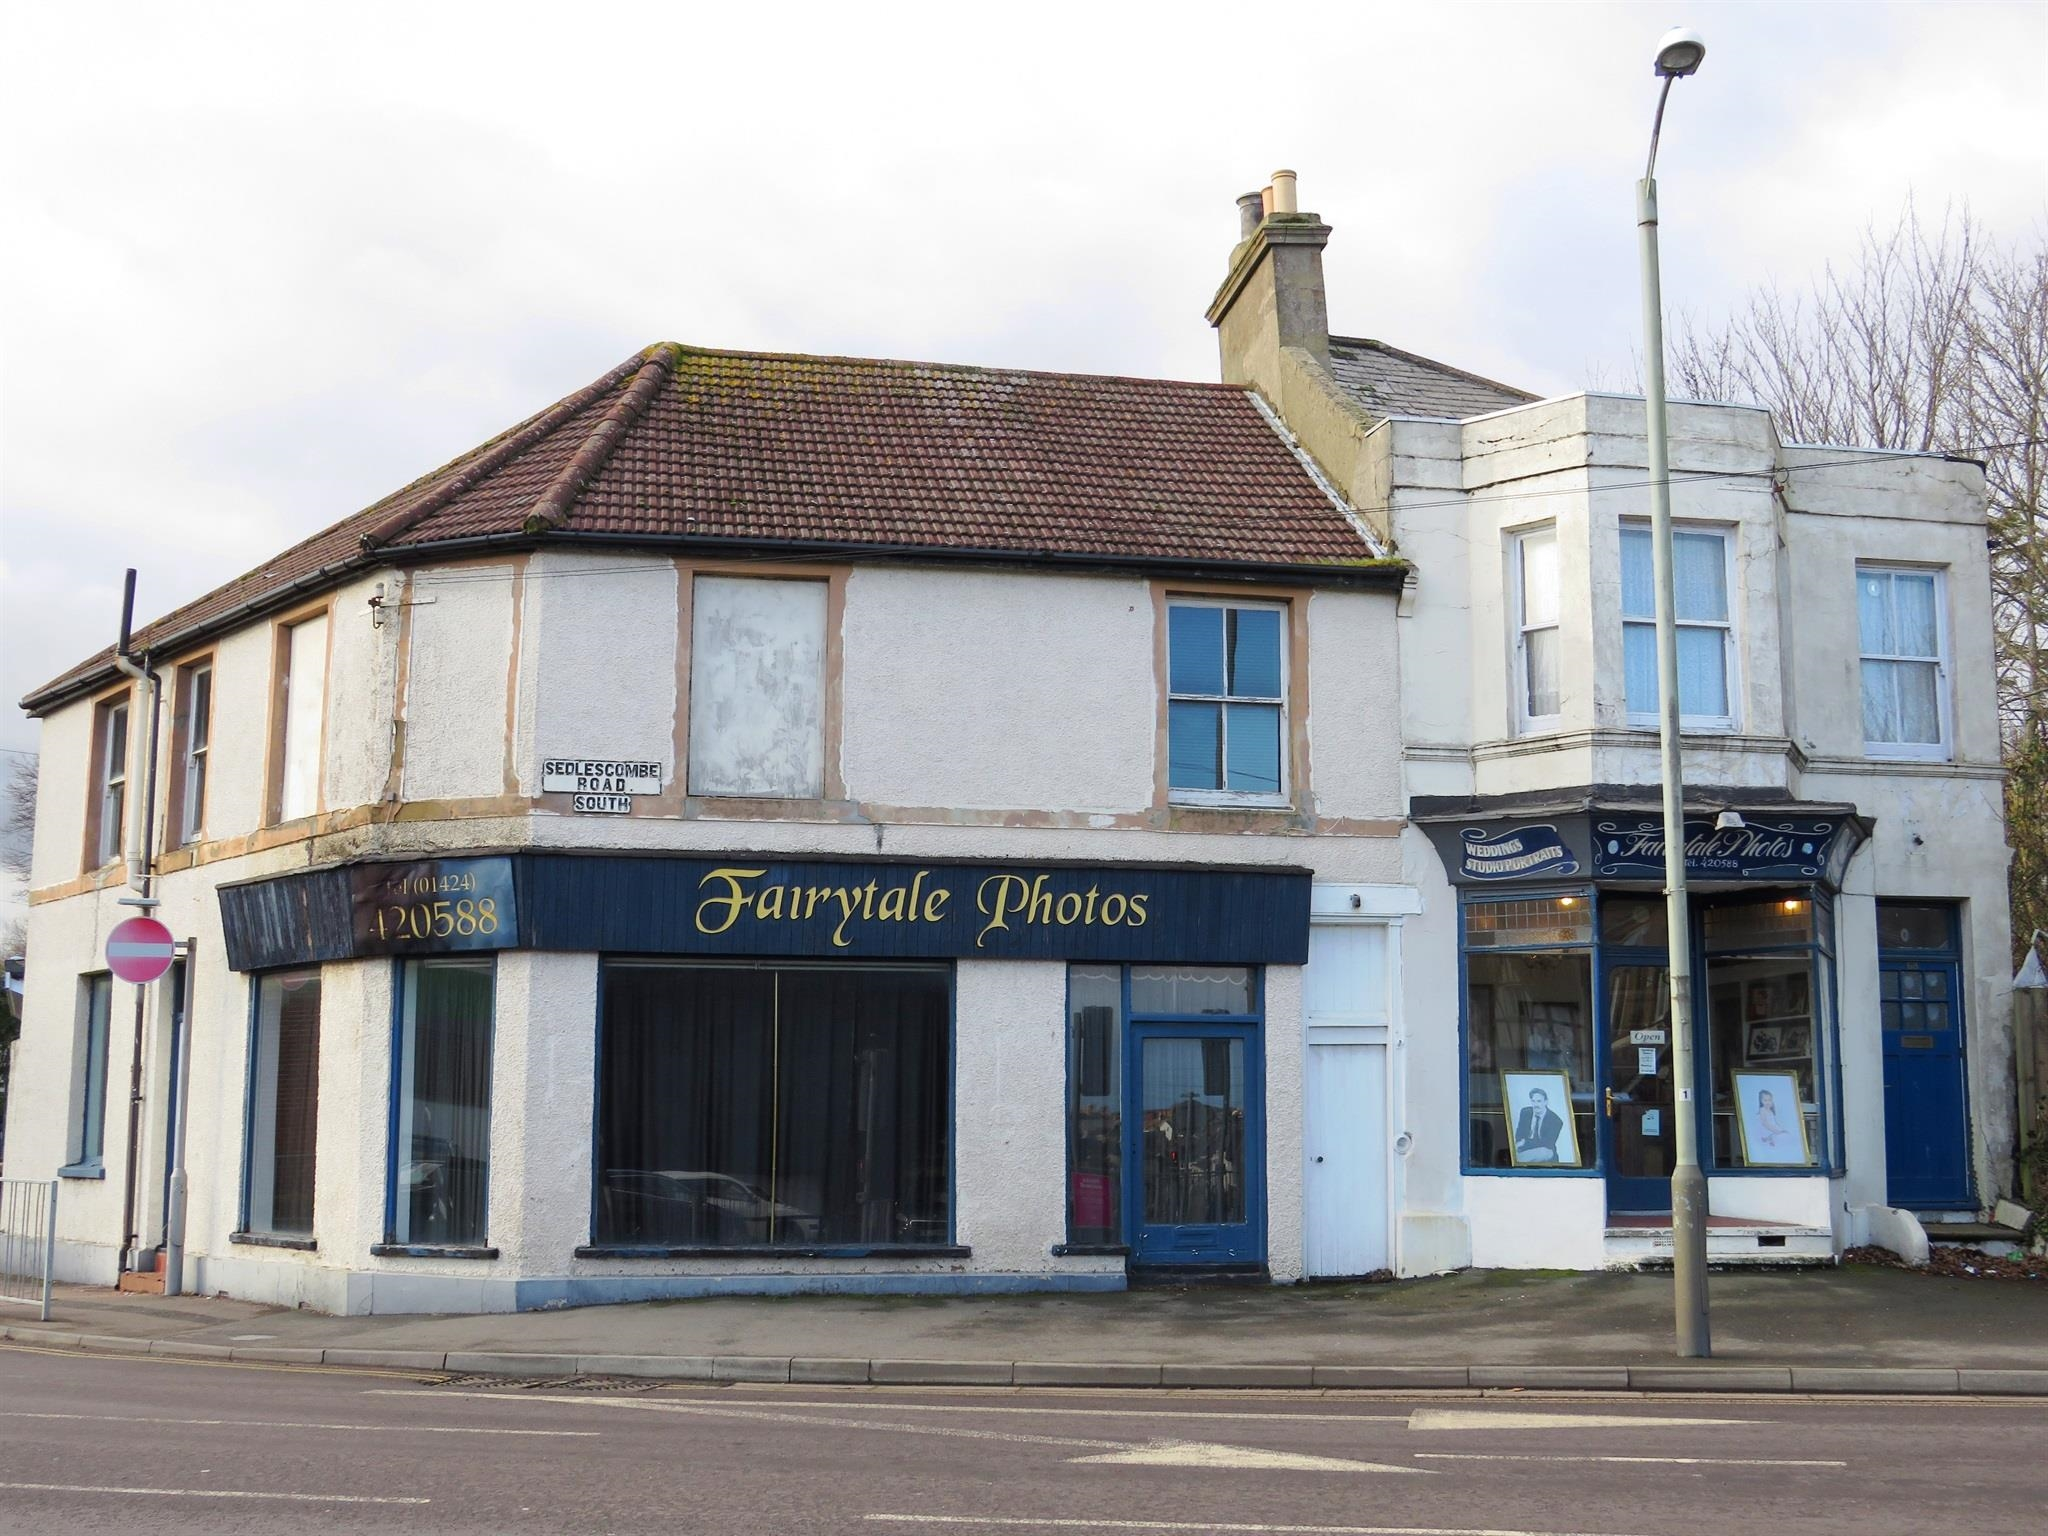 Property For Sale In Sedlescombe